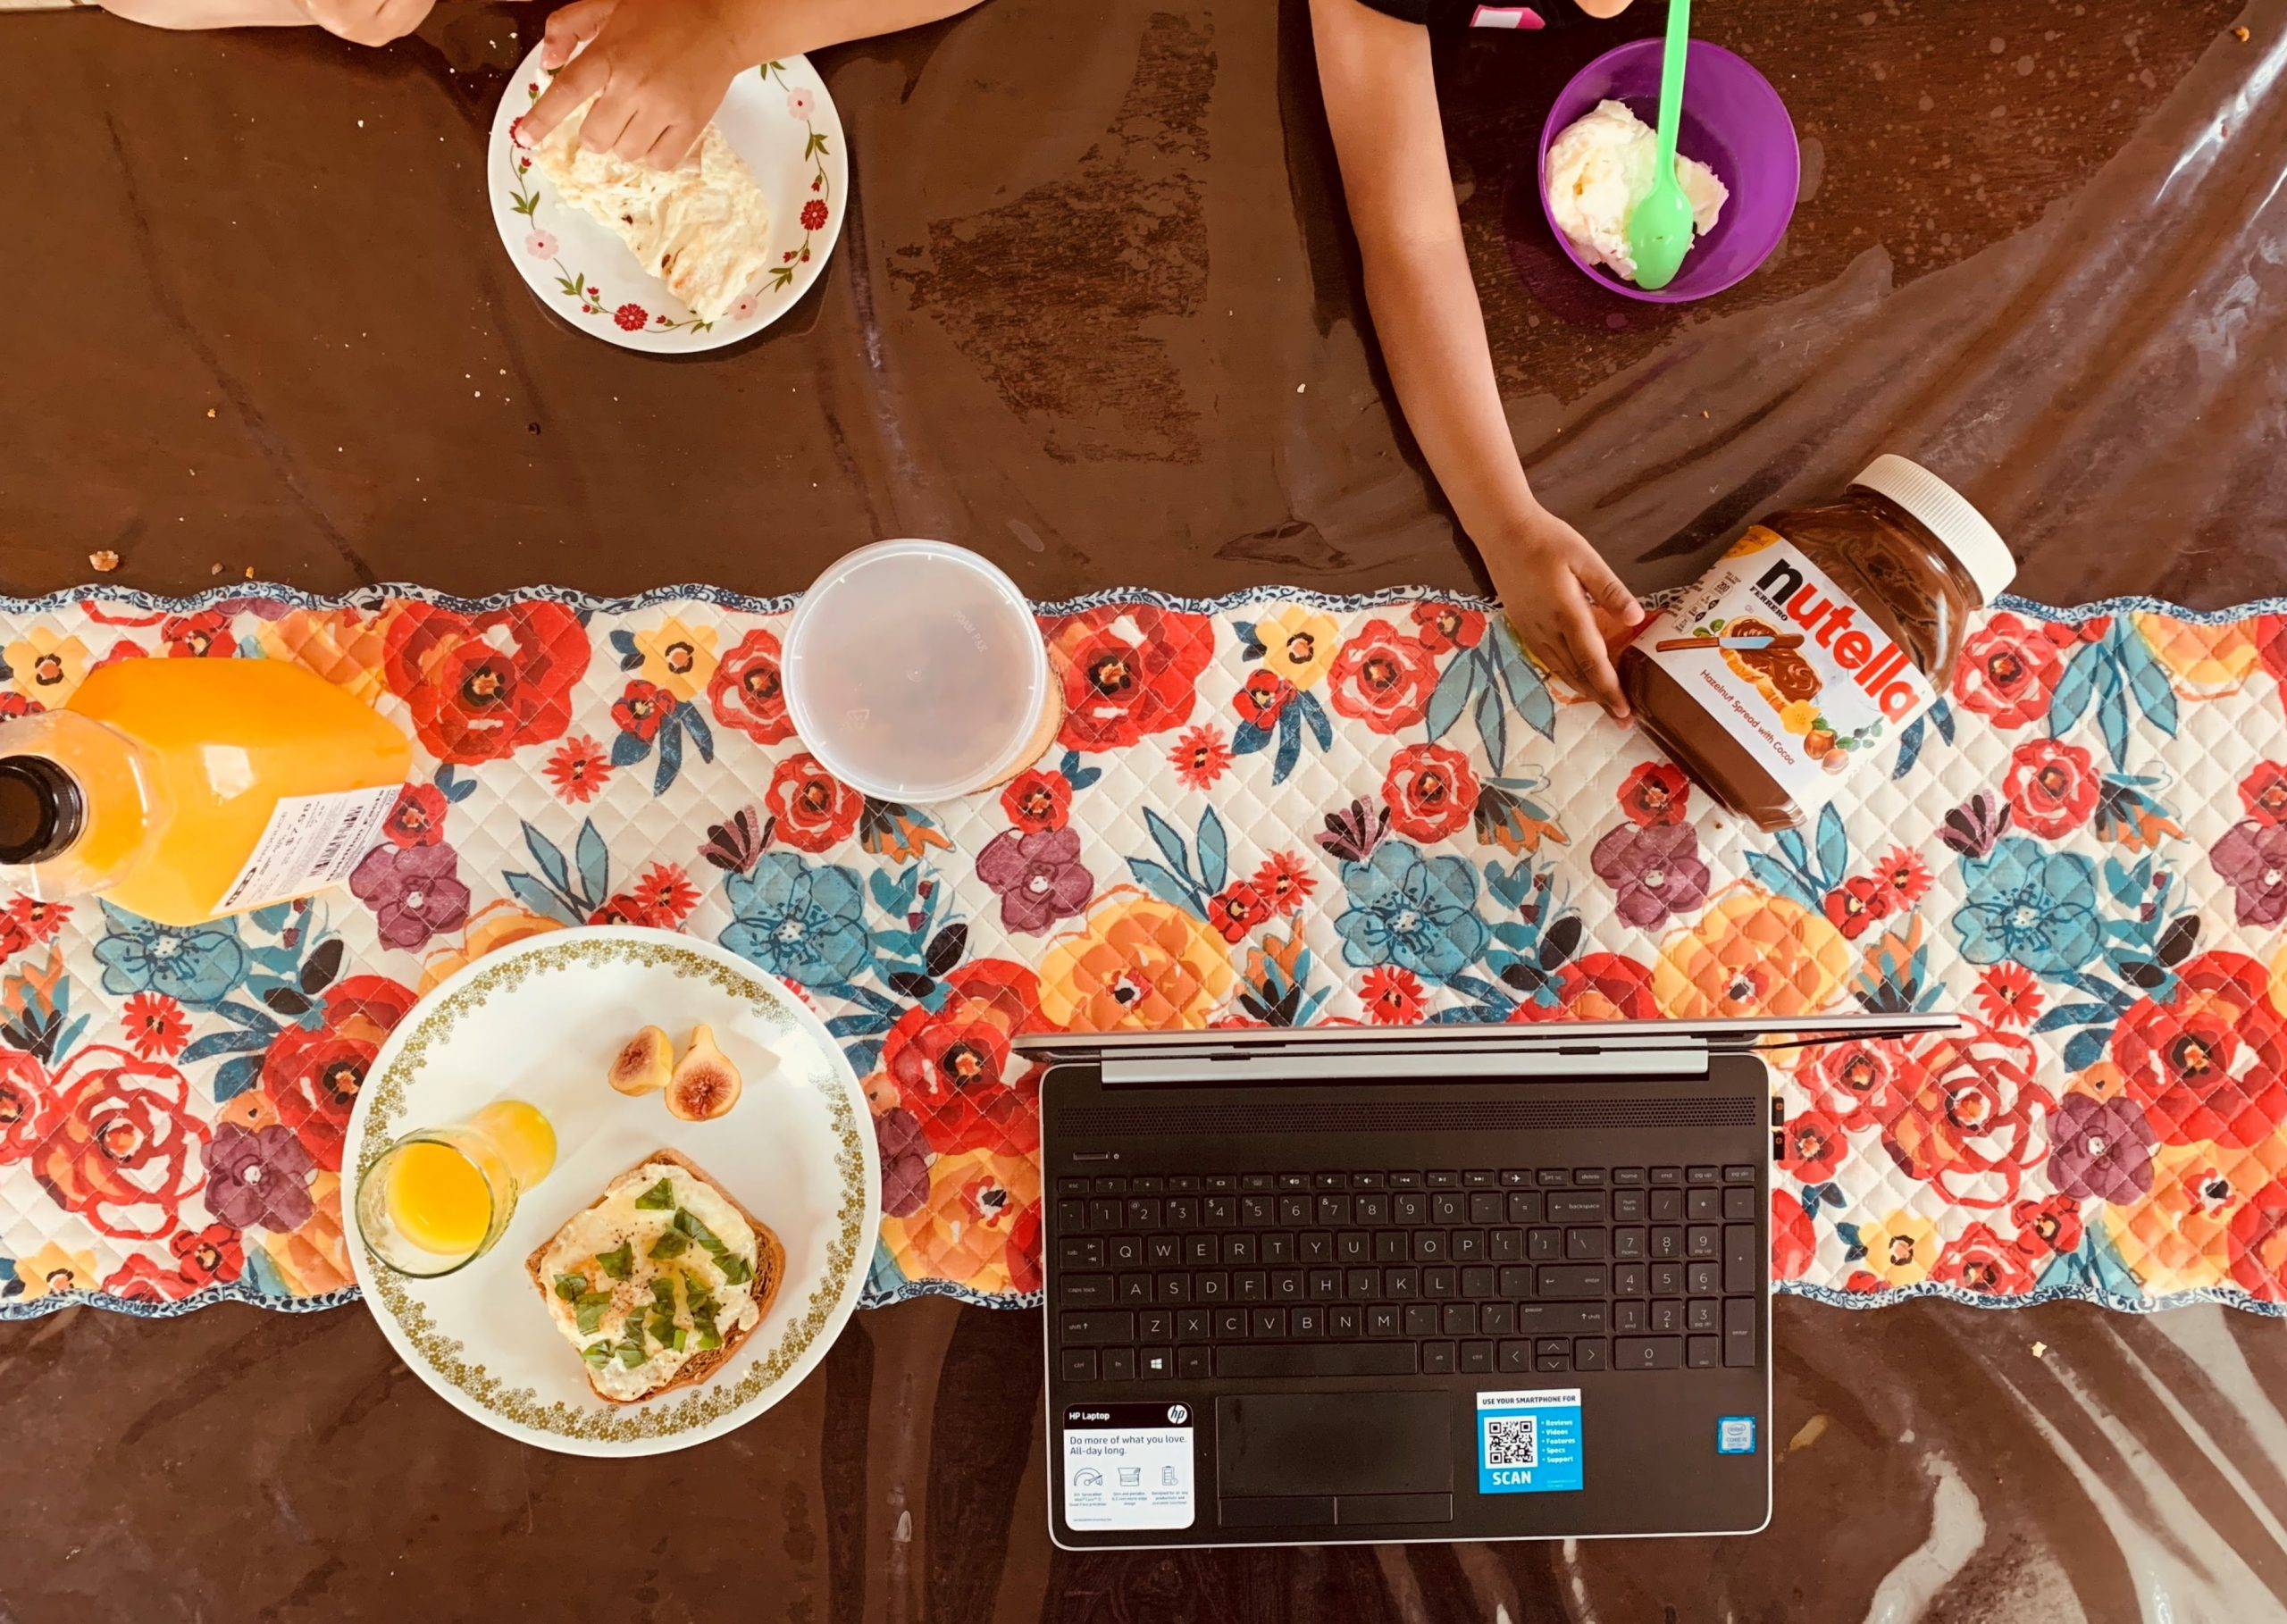 Working from home and sharing meals during pandemic